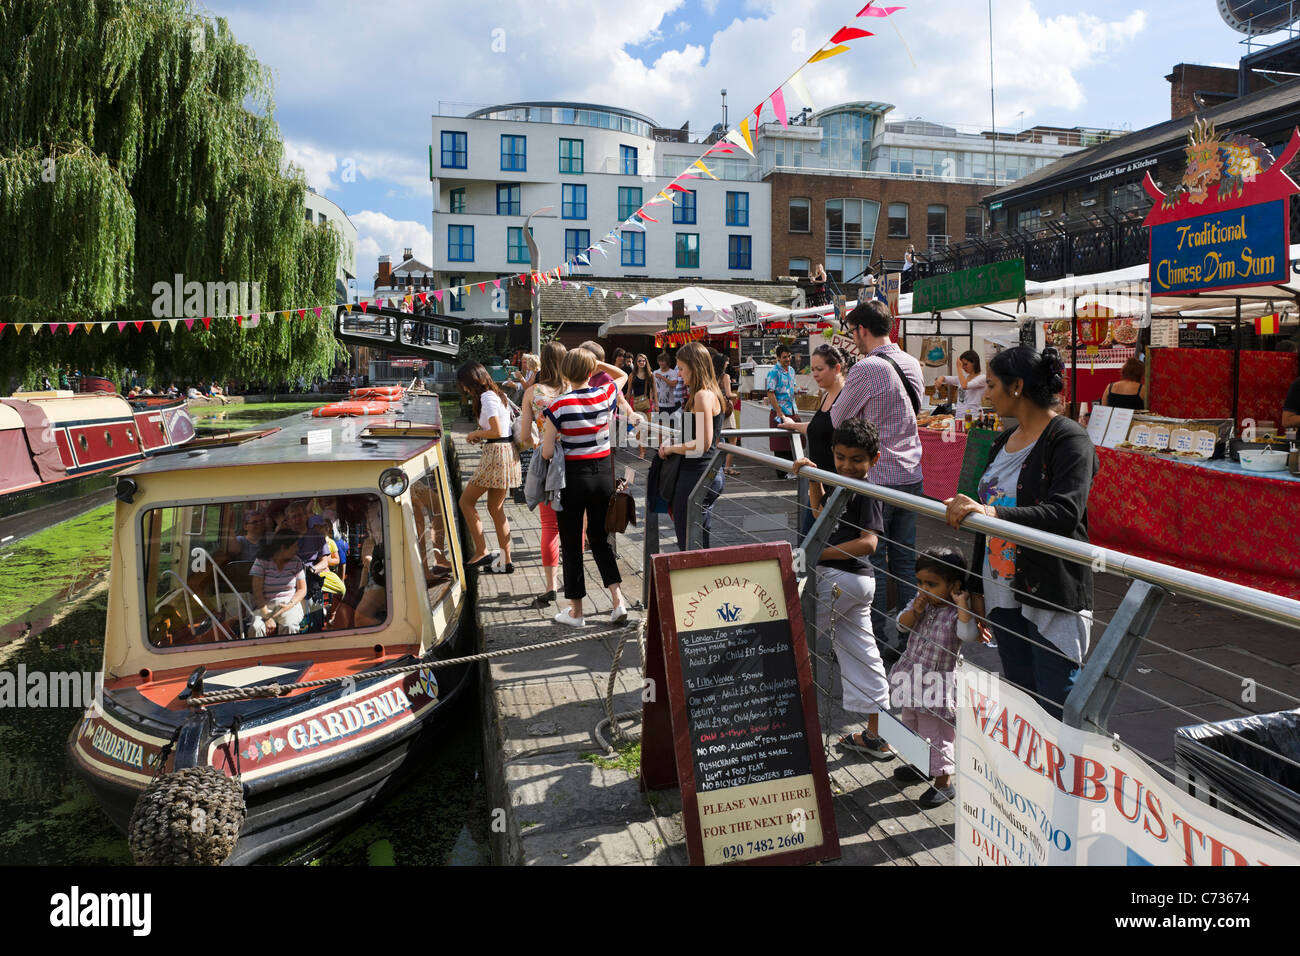 Narrowboats for canal trips and food stalls at Camden Lock, North London, England, UK - Stock Image